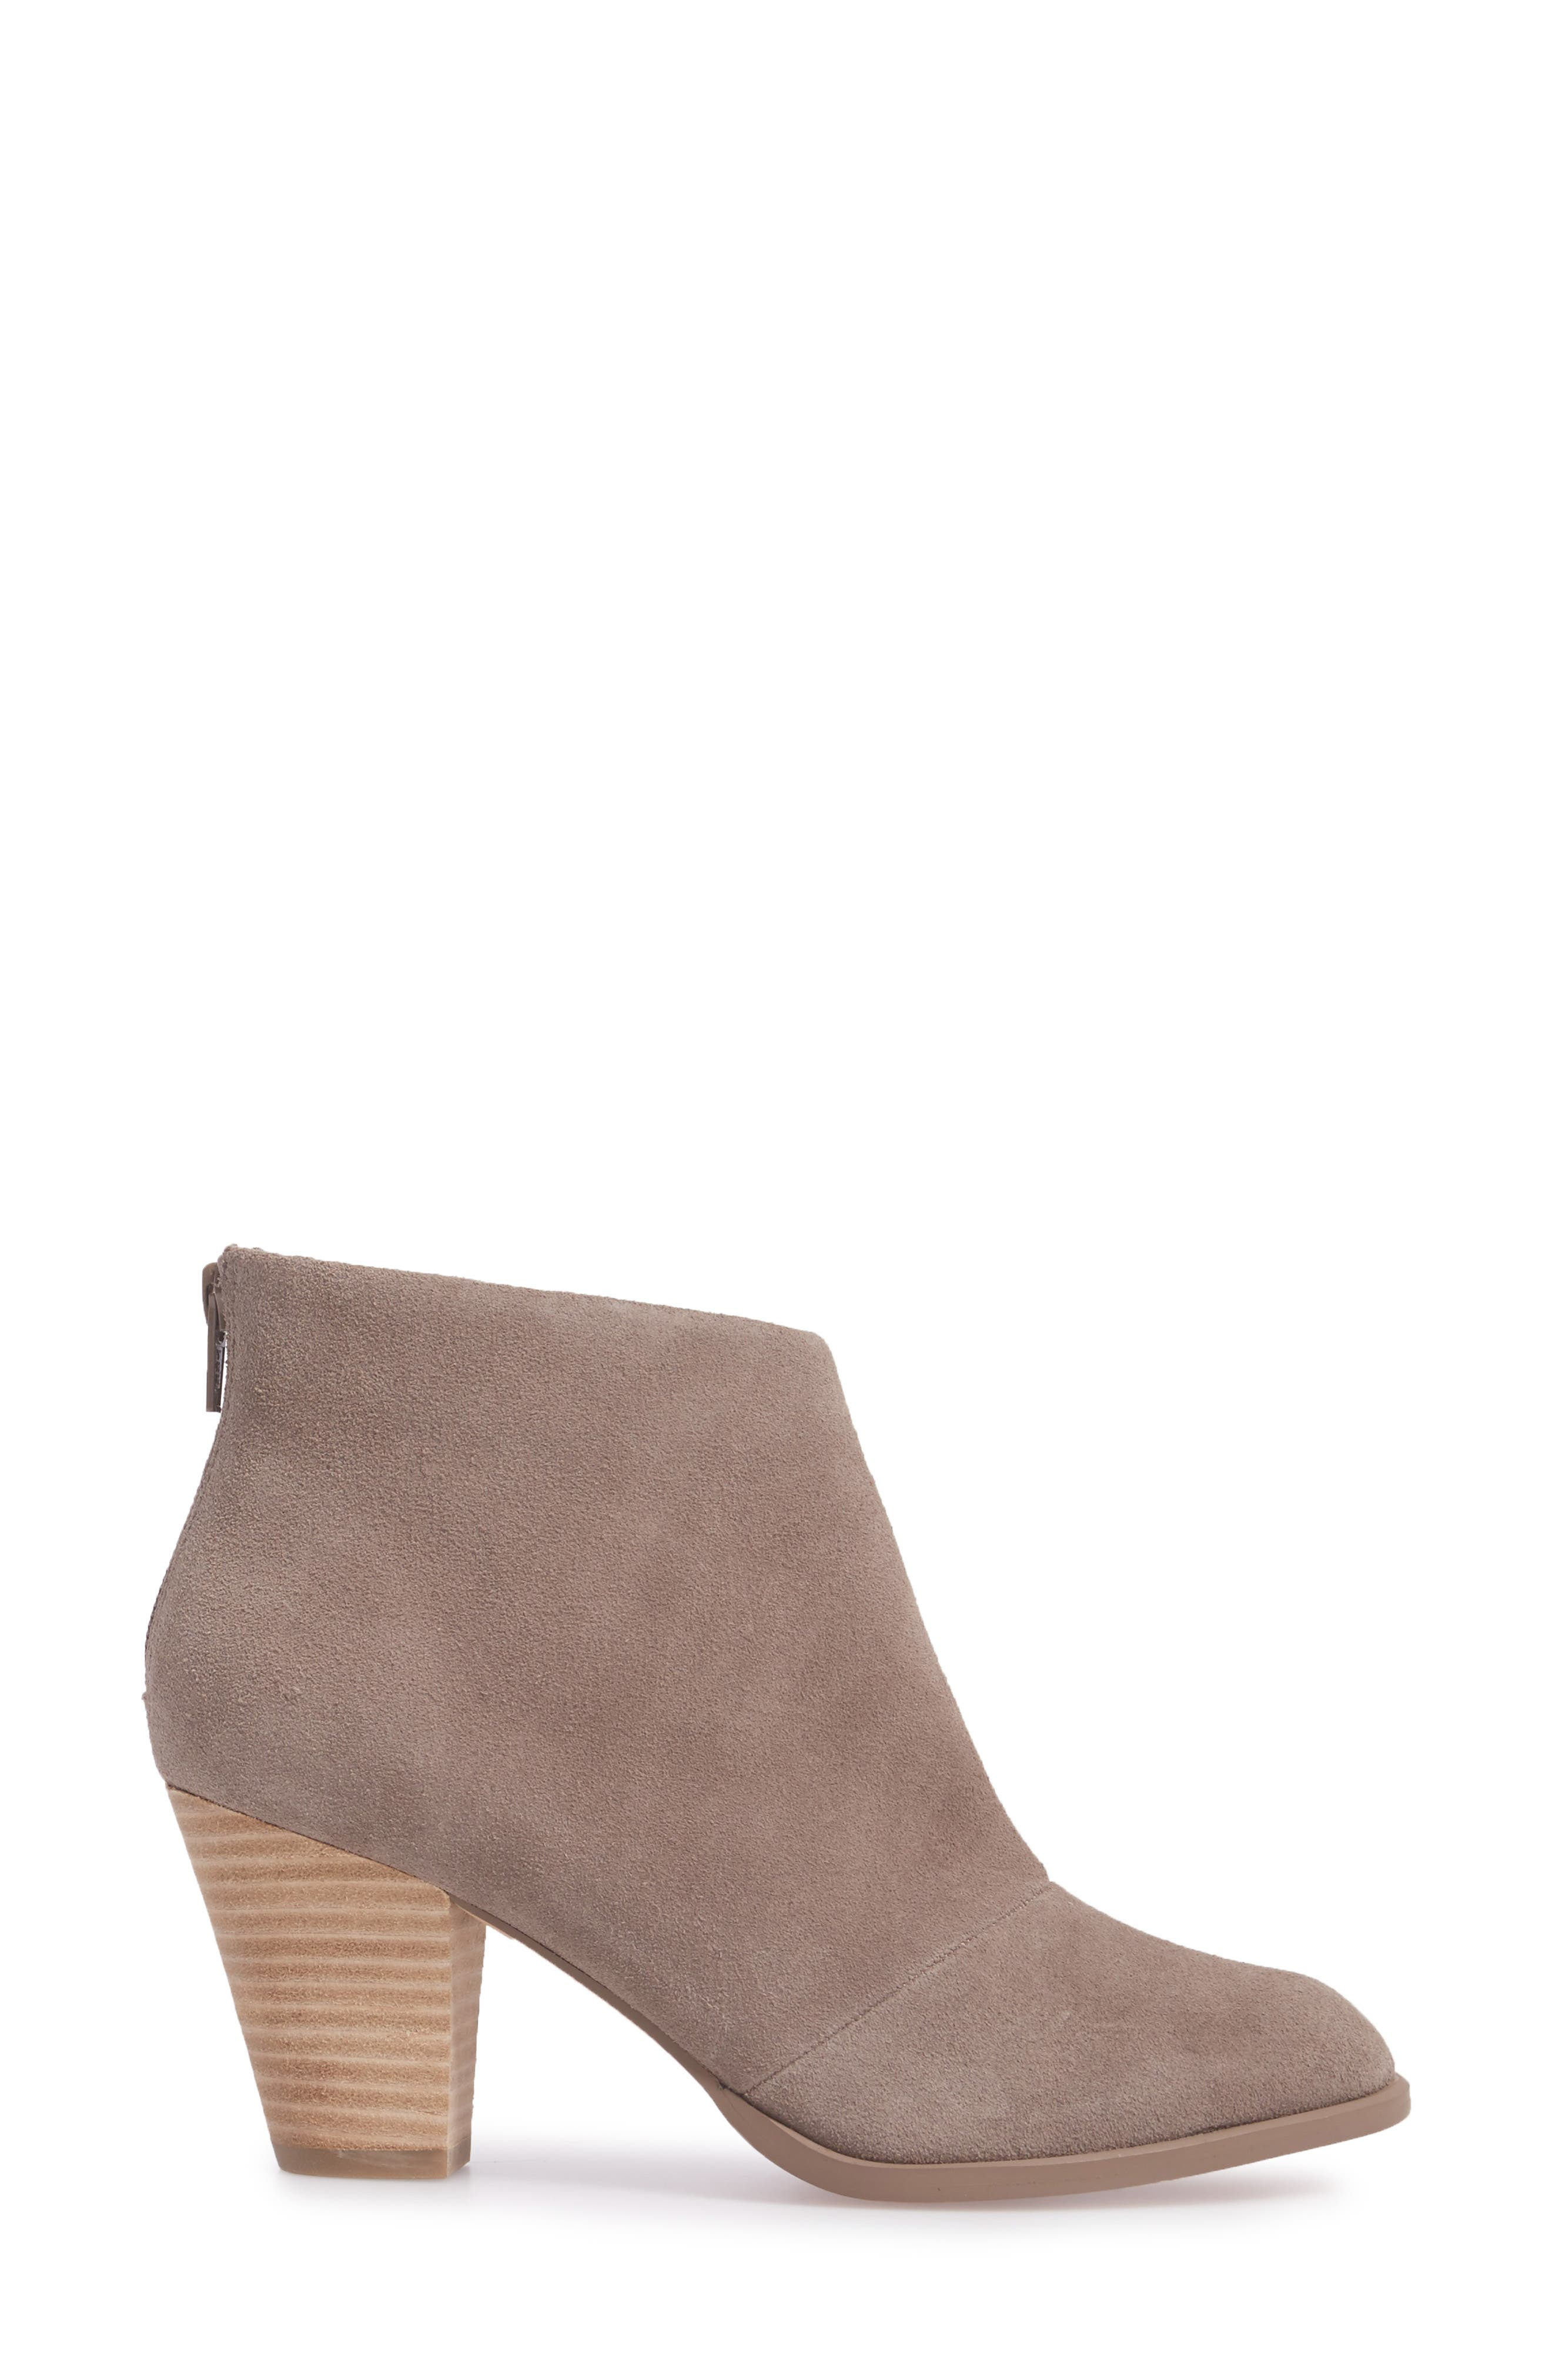 'Devyn' Ankle Bootie,                             Alternate thumbnail 3, color,                             020